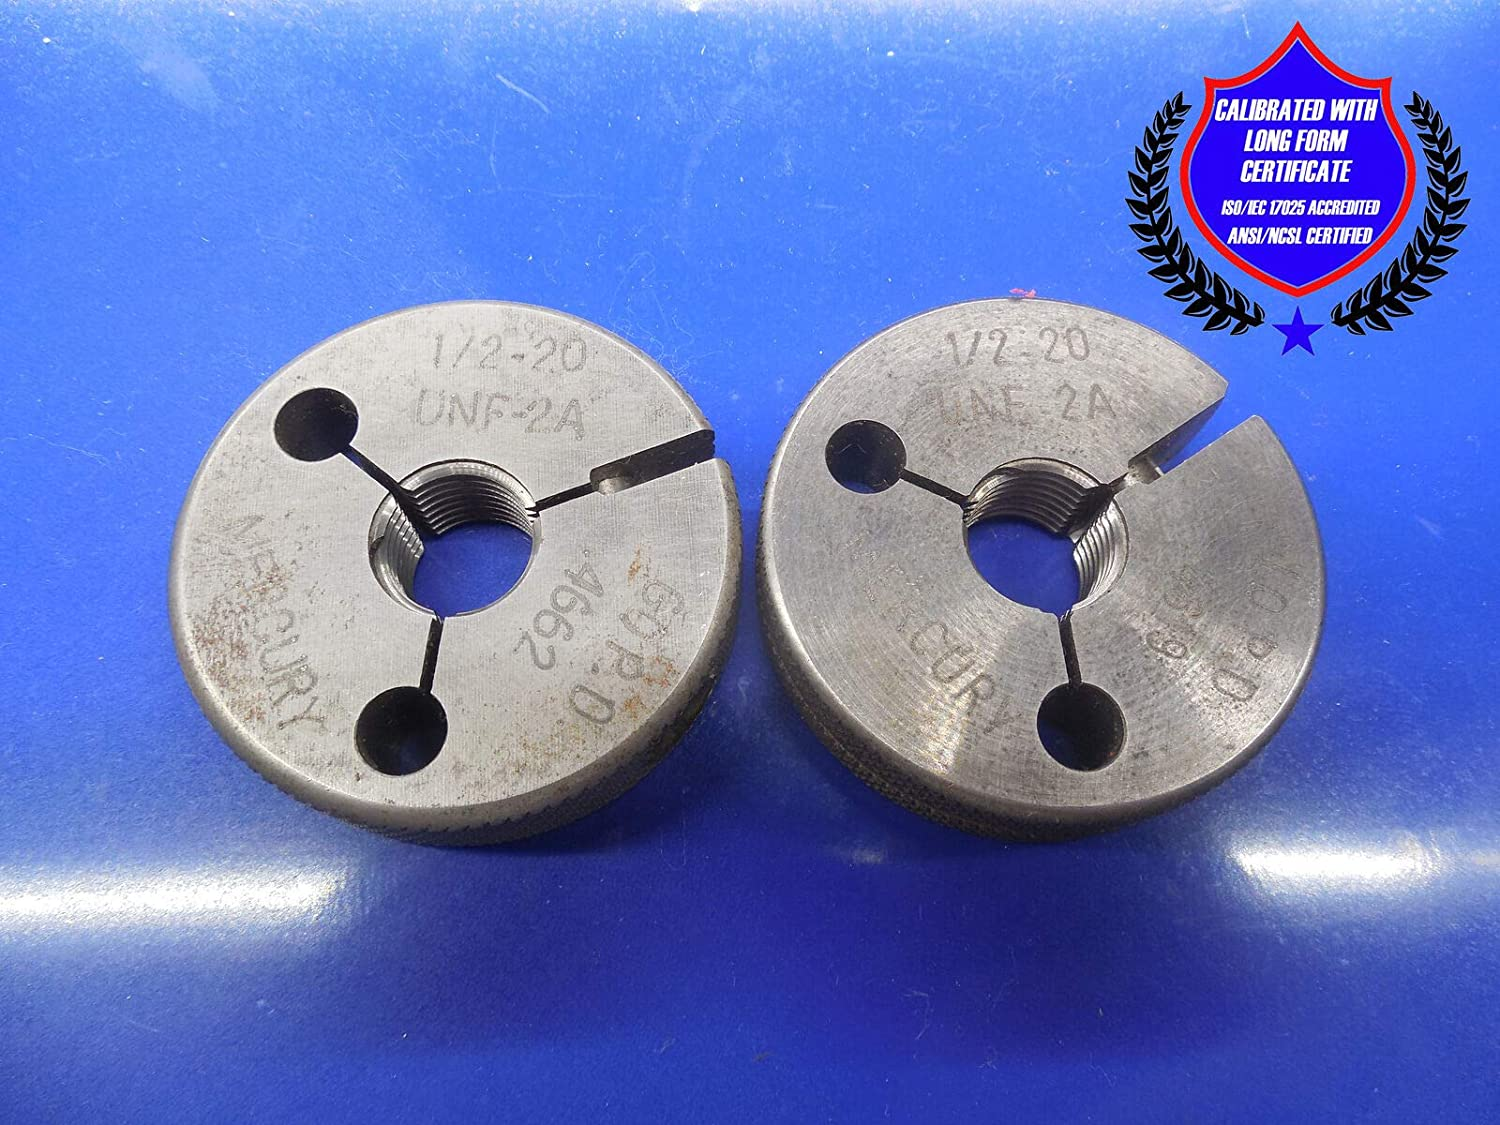 New Certified CALIBRATED 1//2 20 UNF 2A Thread Ring GAGES .5 GO NO GO .4662 .4619